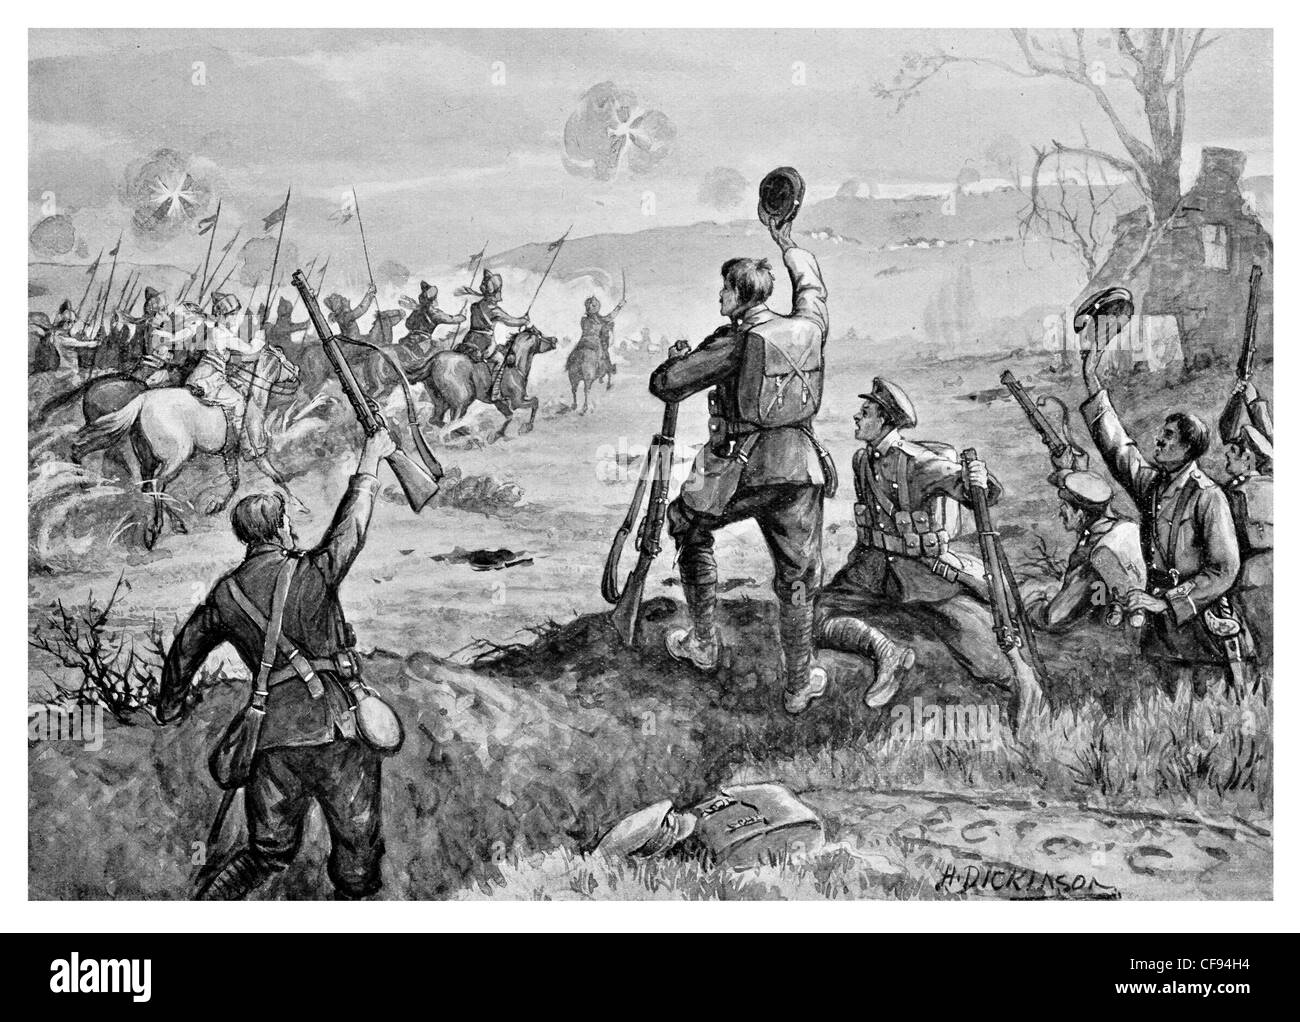 Charge of Indian Cavalry - Stock Image